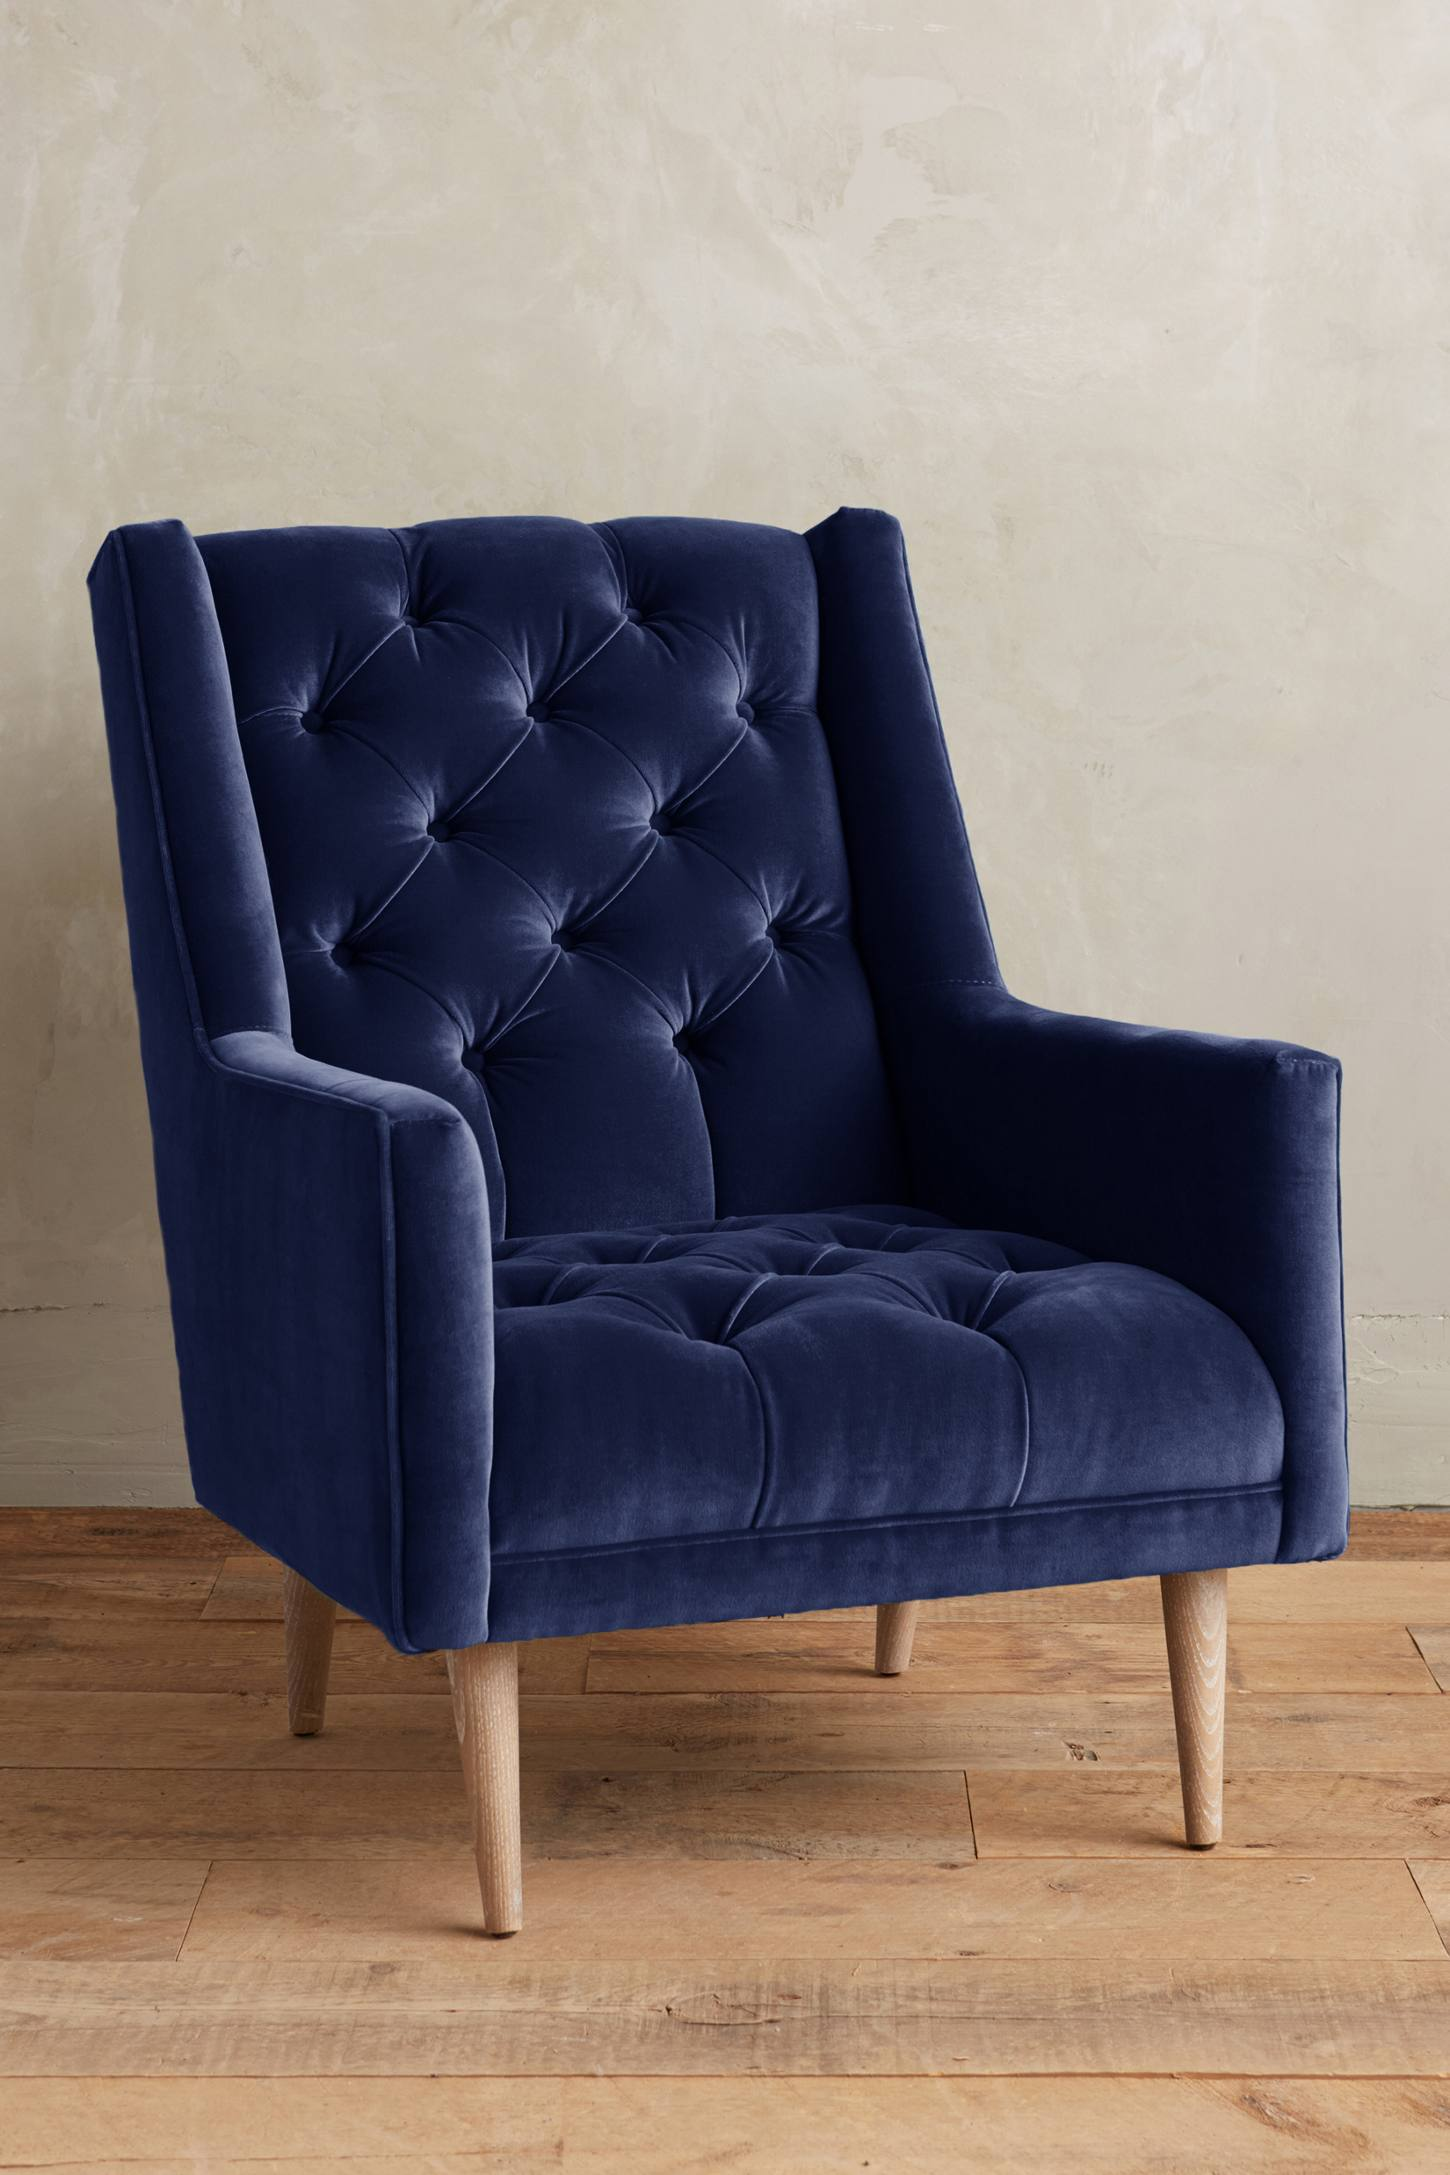 A timeless, cozy, well-made chair. (Booker Chair, Anthropologie)